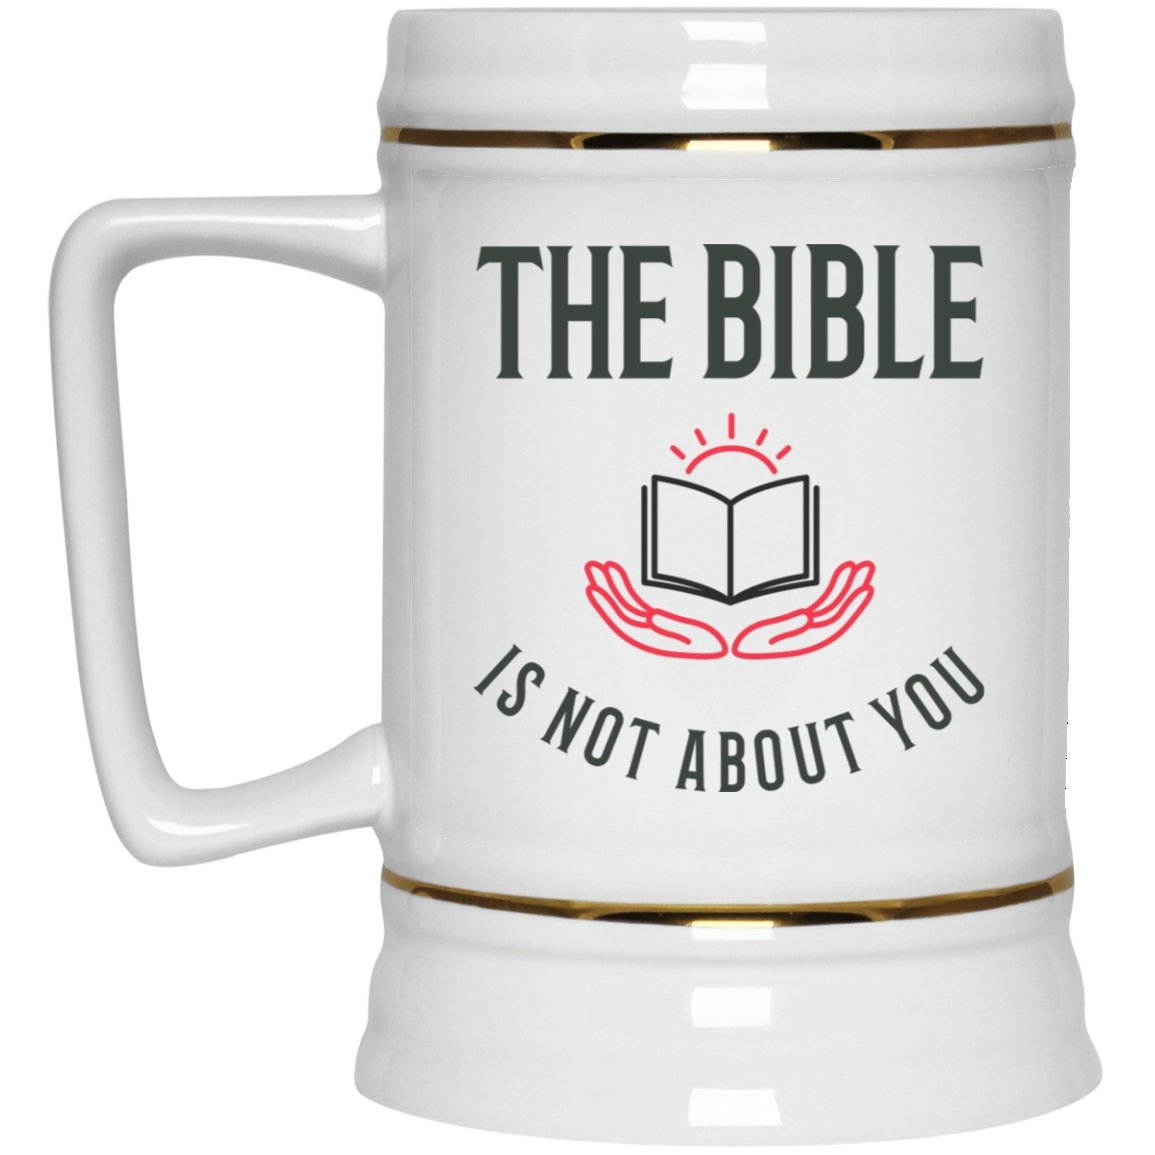 The Bible is Not About You! (22oz Beer Stein) - SDG Clothing